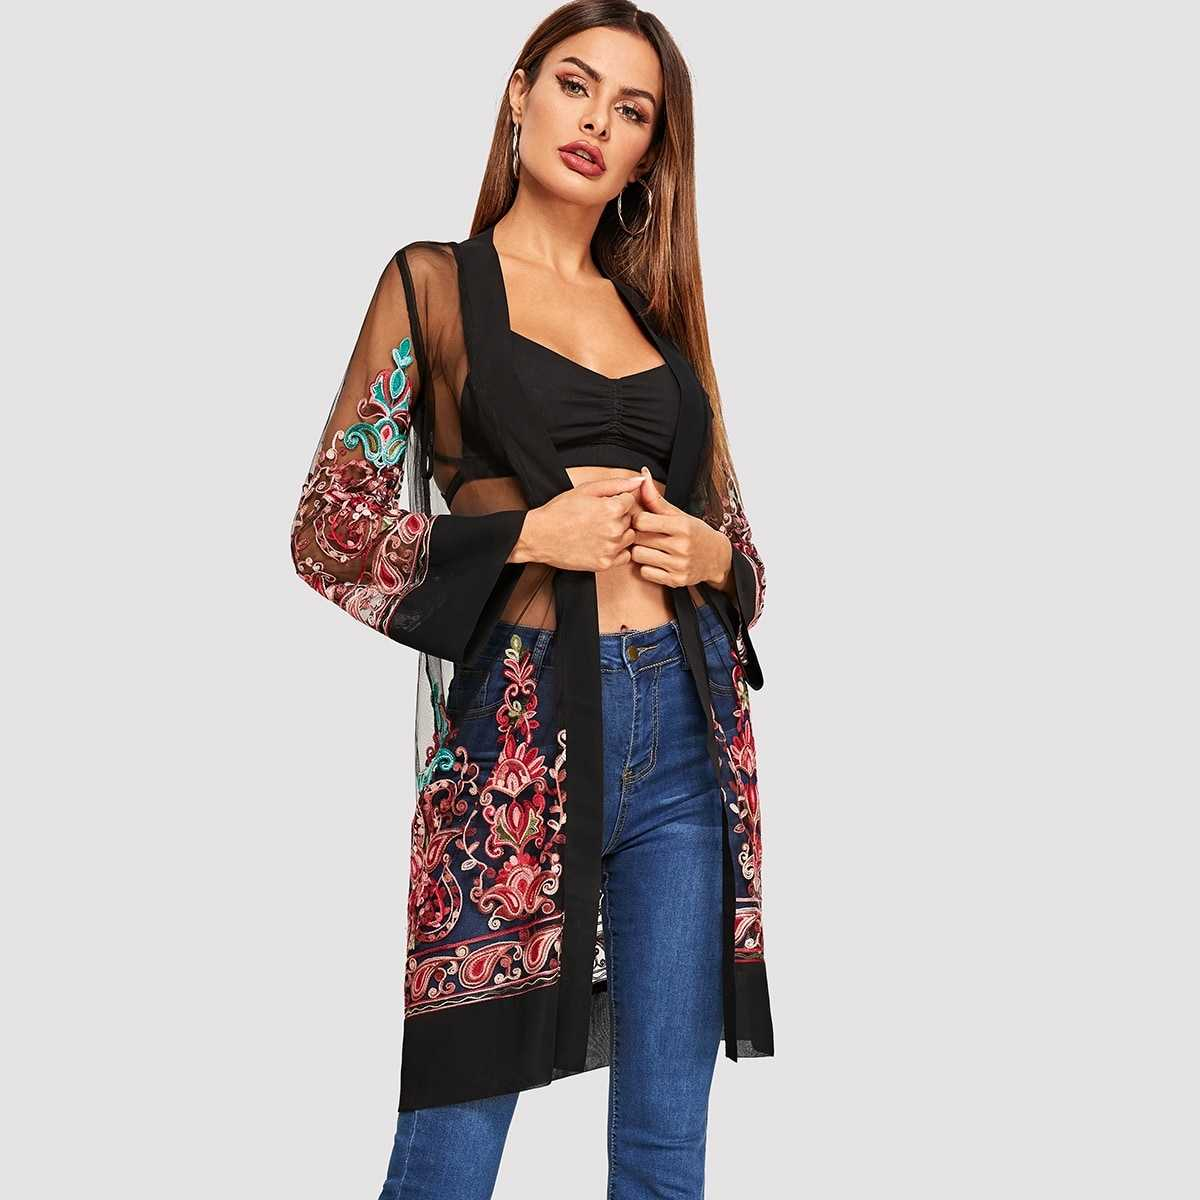 Open Front Mesh Flower Embroidered Kimono in Multicolor by ROMWE on GOOFASH